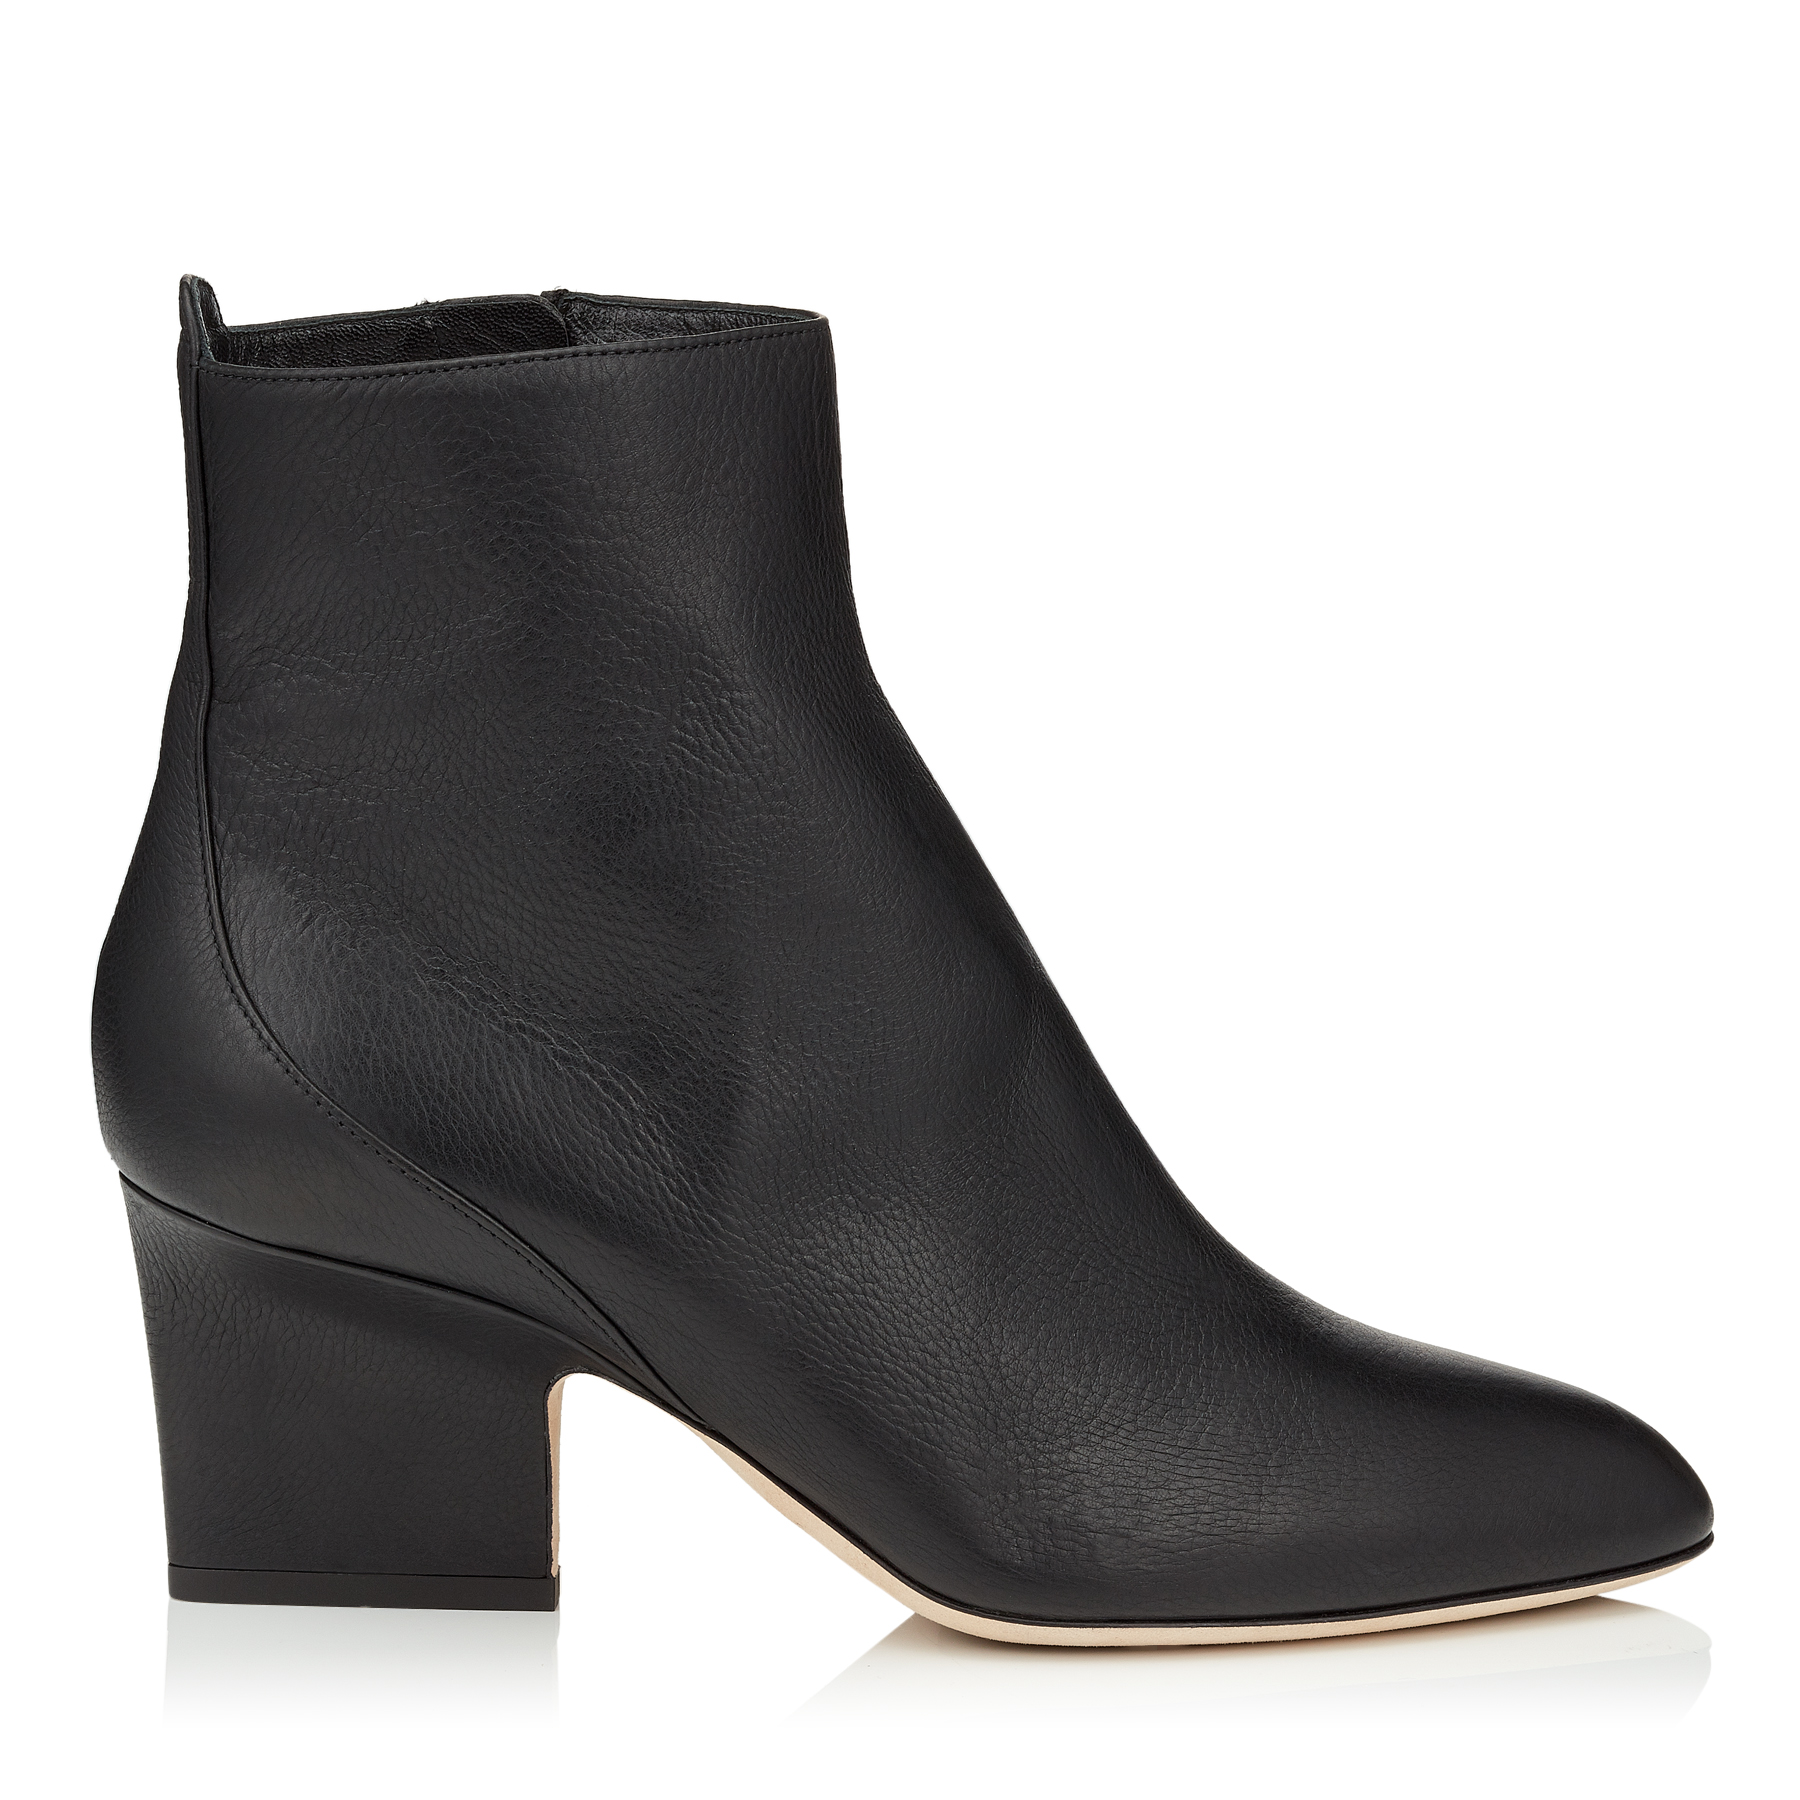 AUTUMN 65 Black Grainy Leather Round Toe Booties by Jimmy Choo